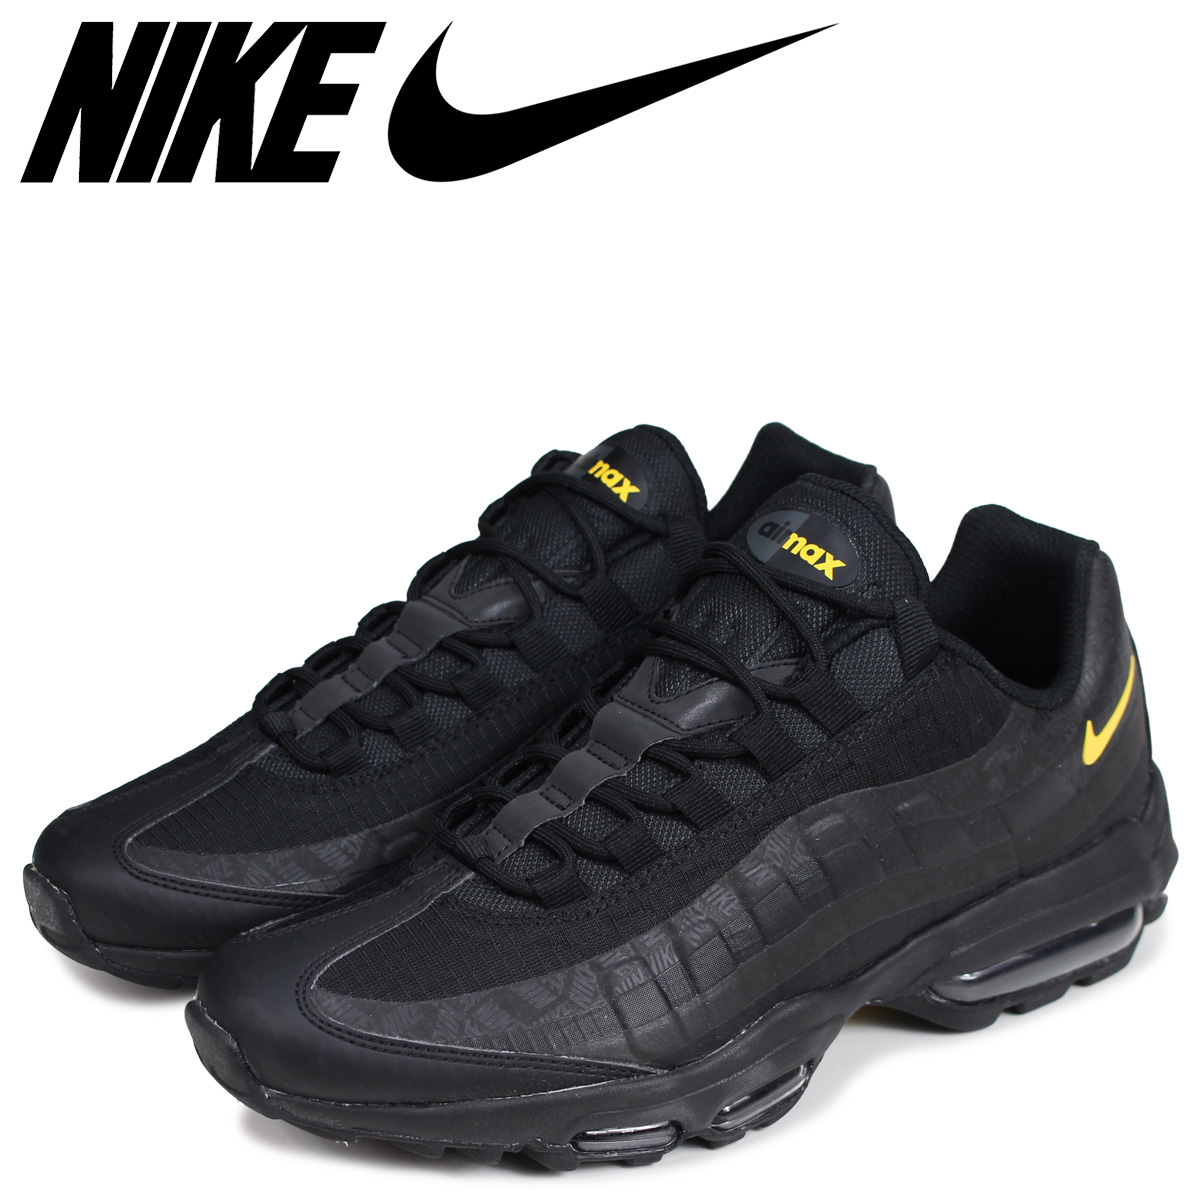 wholesale dealer 278c7 fba4a NIKE Kie Ney AMAX 95 sneakers men AIR MAX 95 ULTRA SE black black  AR4236-002 [the 7/9 additional arrival]